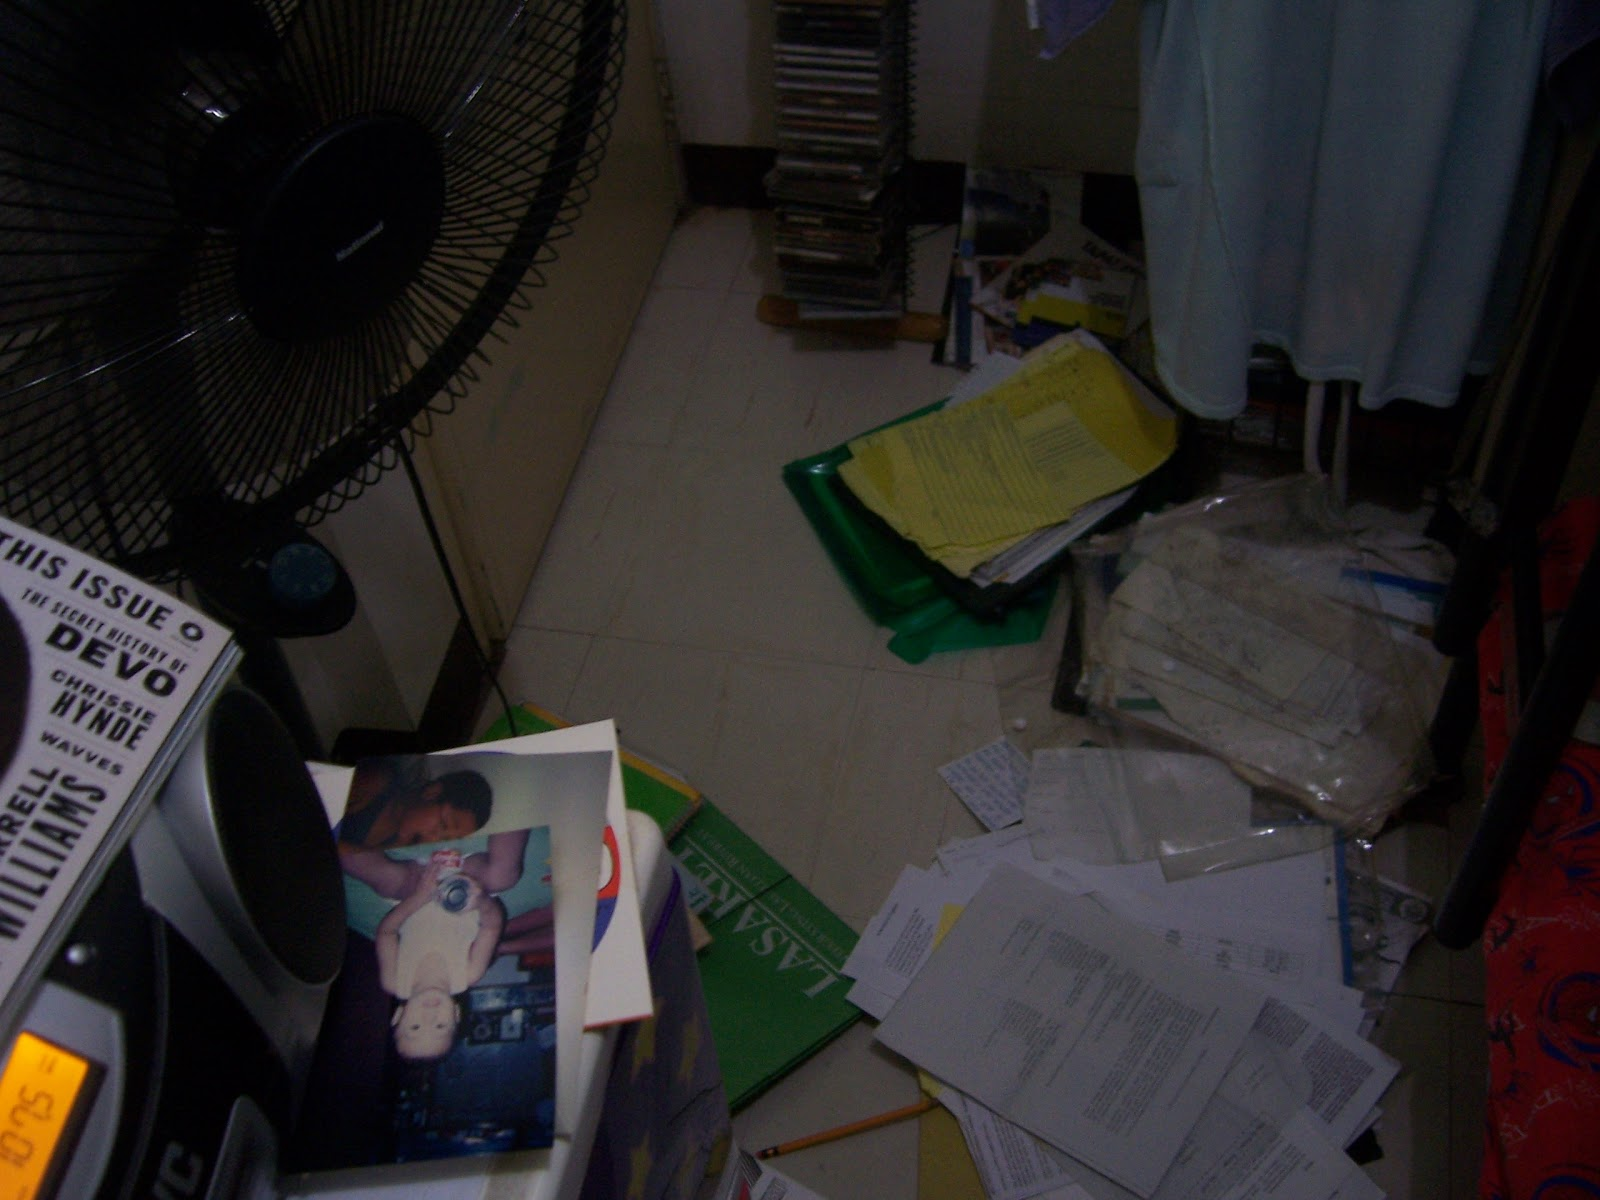 Friday night in my bedroom, with papers and whatnot from seven years of high school and college sorted out on the floor. And the electric fan, and the radio, and my sister's stuff.